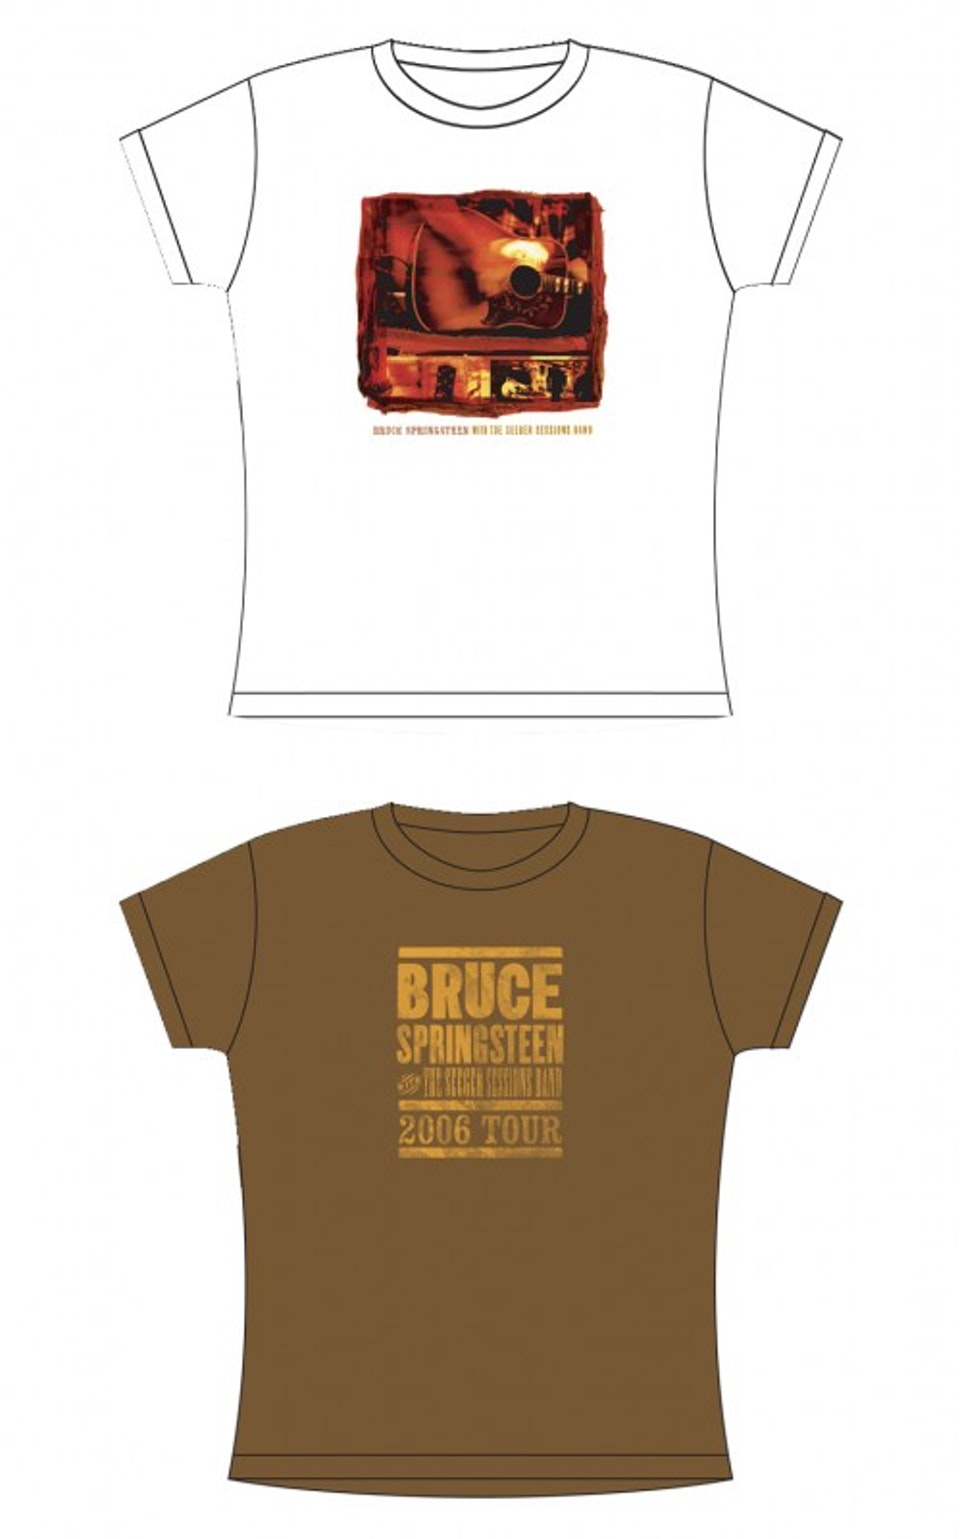 Seeger Sessions Tour Merch